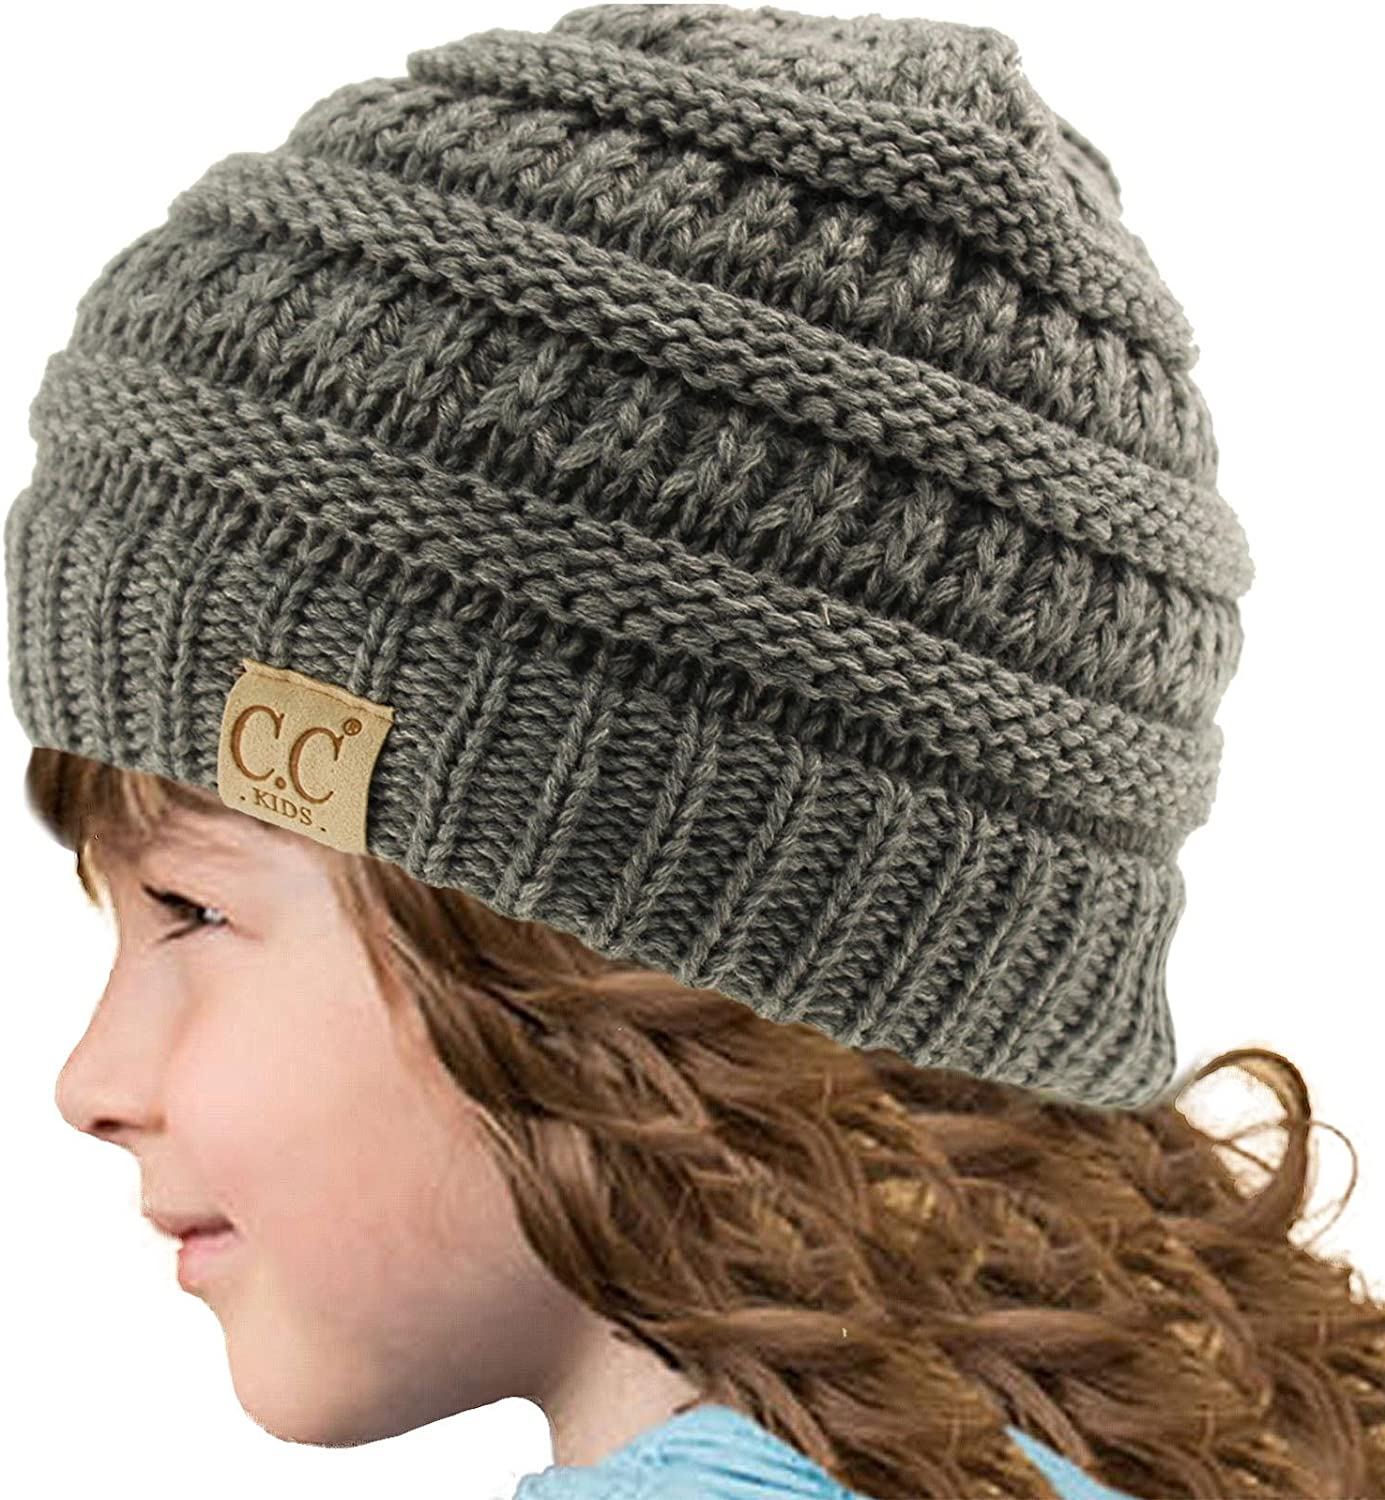 Kids CC Ages 2-7 PomPom Chunky Thick Stretchy Knit Slouch Beanie Cap Hat